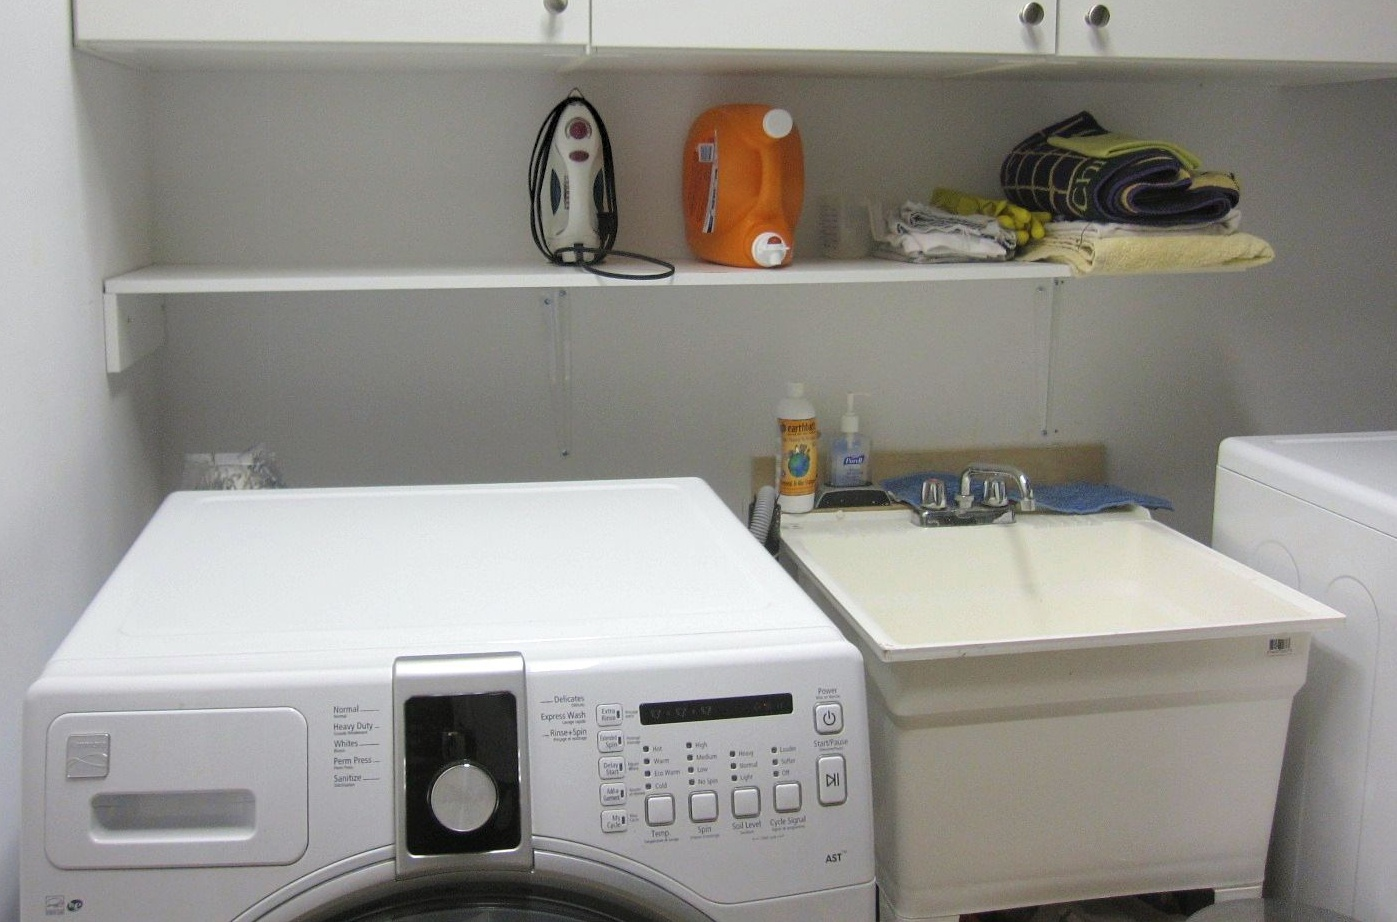 House for rent at 18 Algoma St, Etobicoke, ON. This is the laundry room with tile floor.